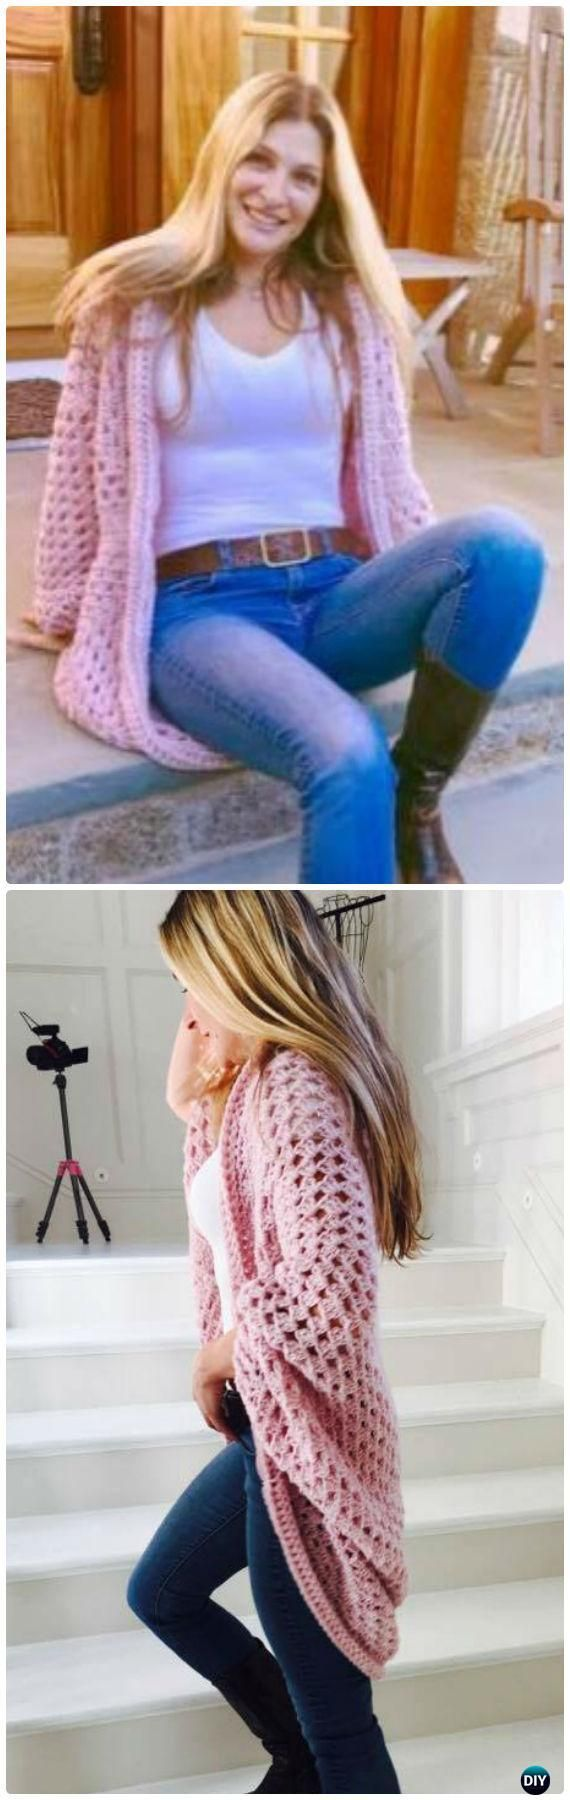 Easy Crochet Cocoon Cardigan Tutorial Free Pattern - Crochet Women Sweater Coat-Cardigan Free Patterns